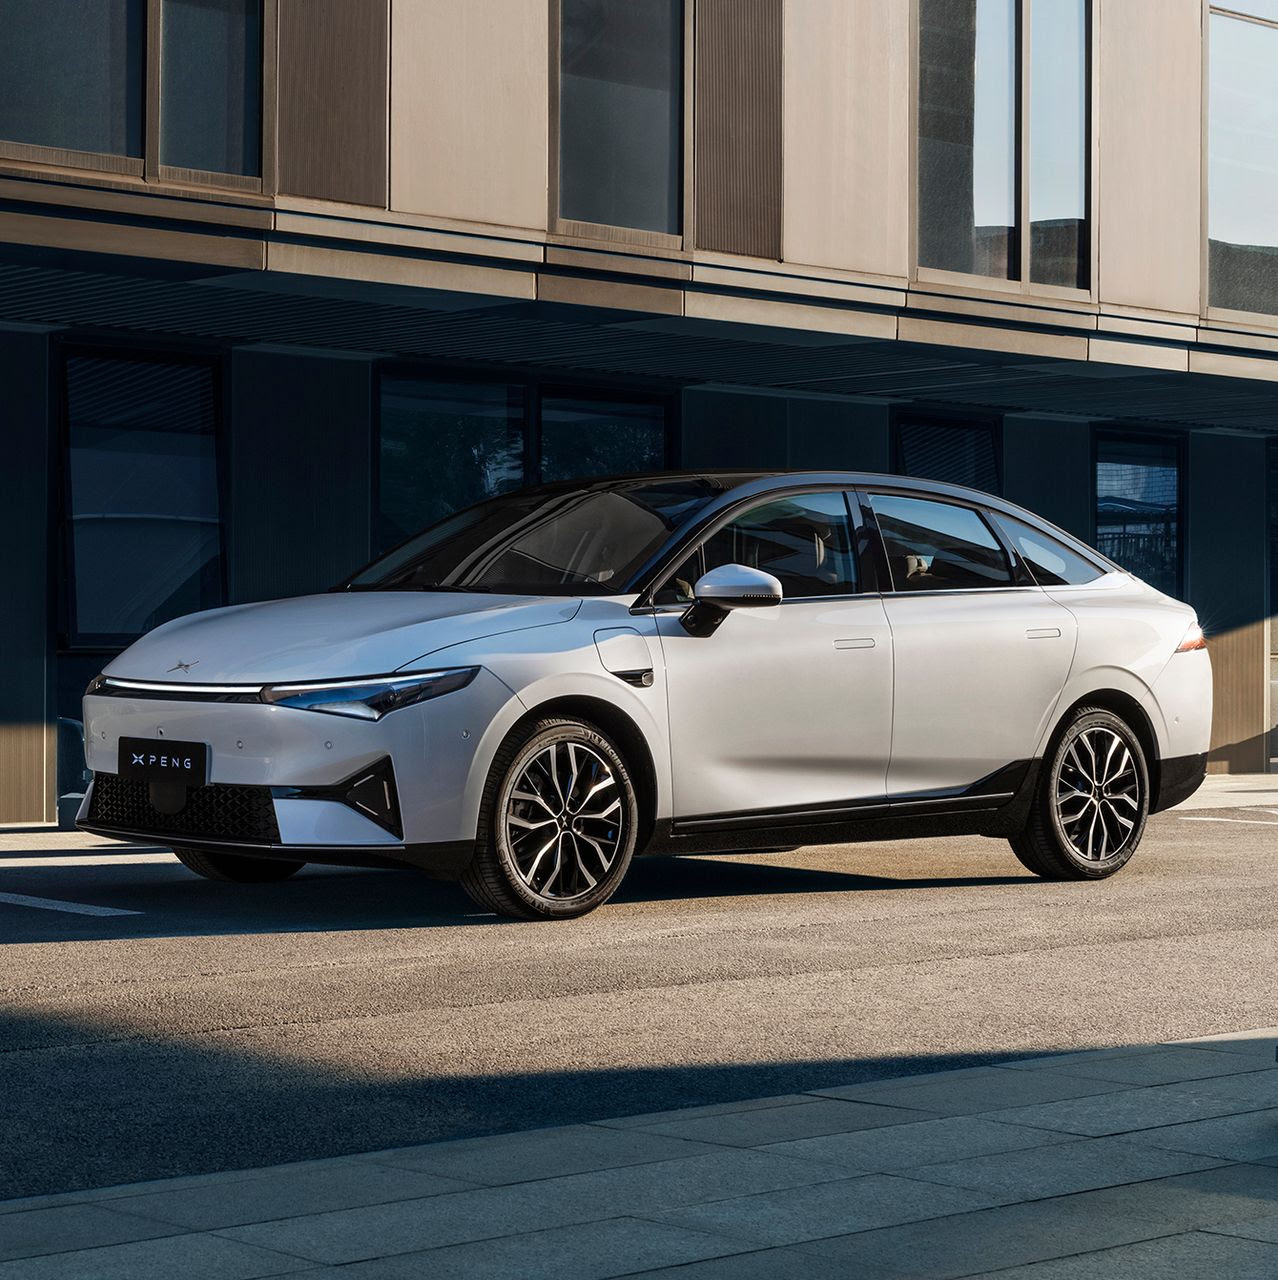 There's a $25,000 EV Coming, but Not From Tesla. Why XPeng Stock Isn't Rising.